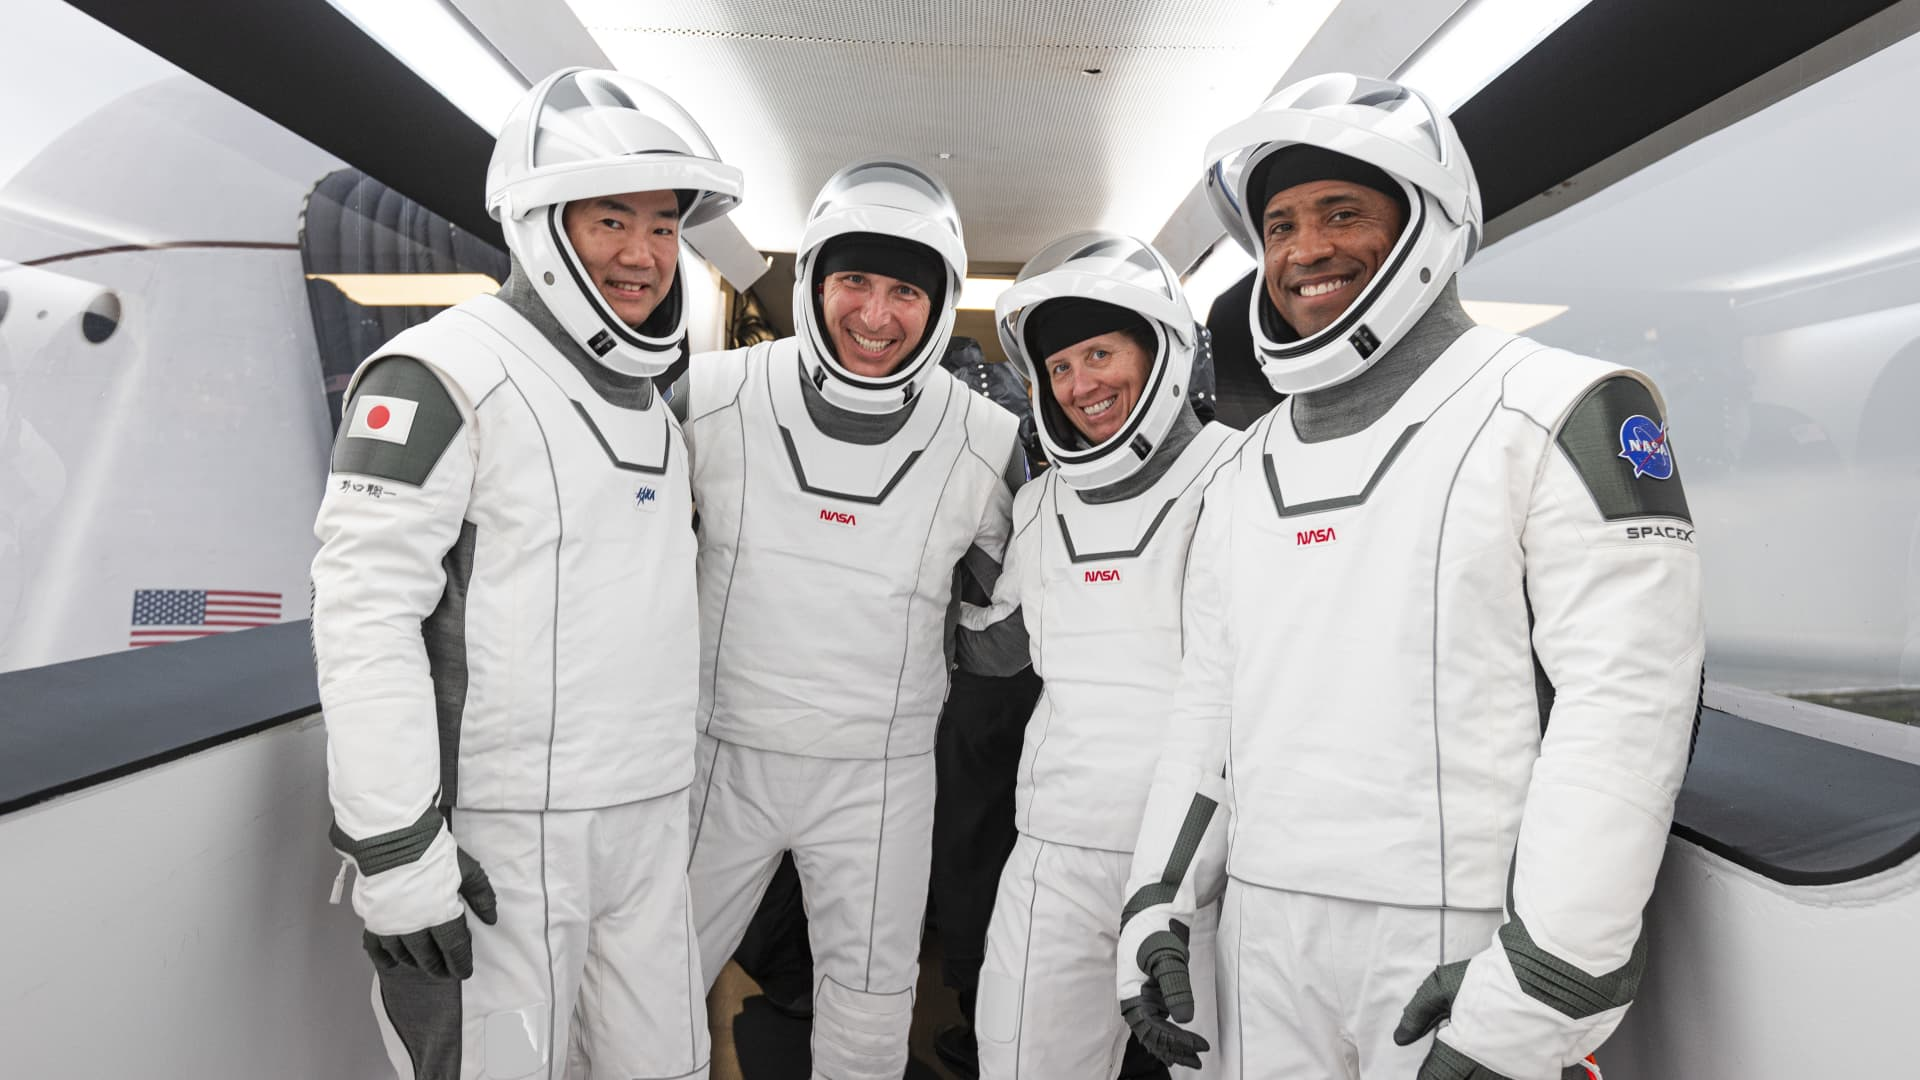 NASA astronauts (right to left) Victor Glover, Shannon Walker, Mike Hopkins and JAXA astronaut Soichi Noguchi in their SpaceX spacesuits during Crew-1 pre-launch preparations.